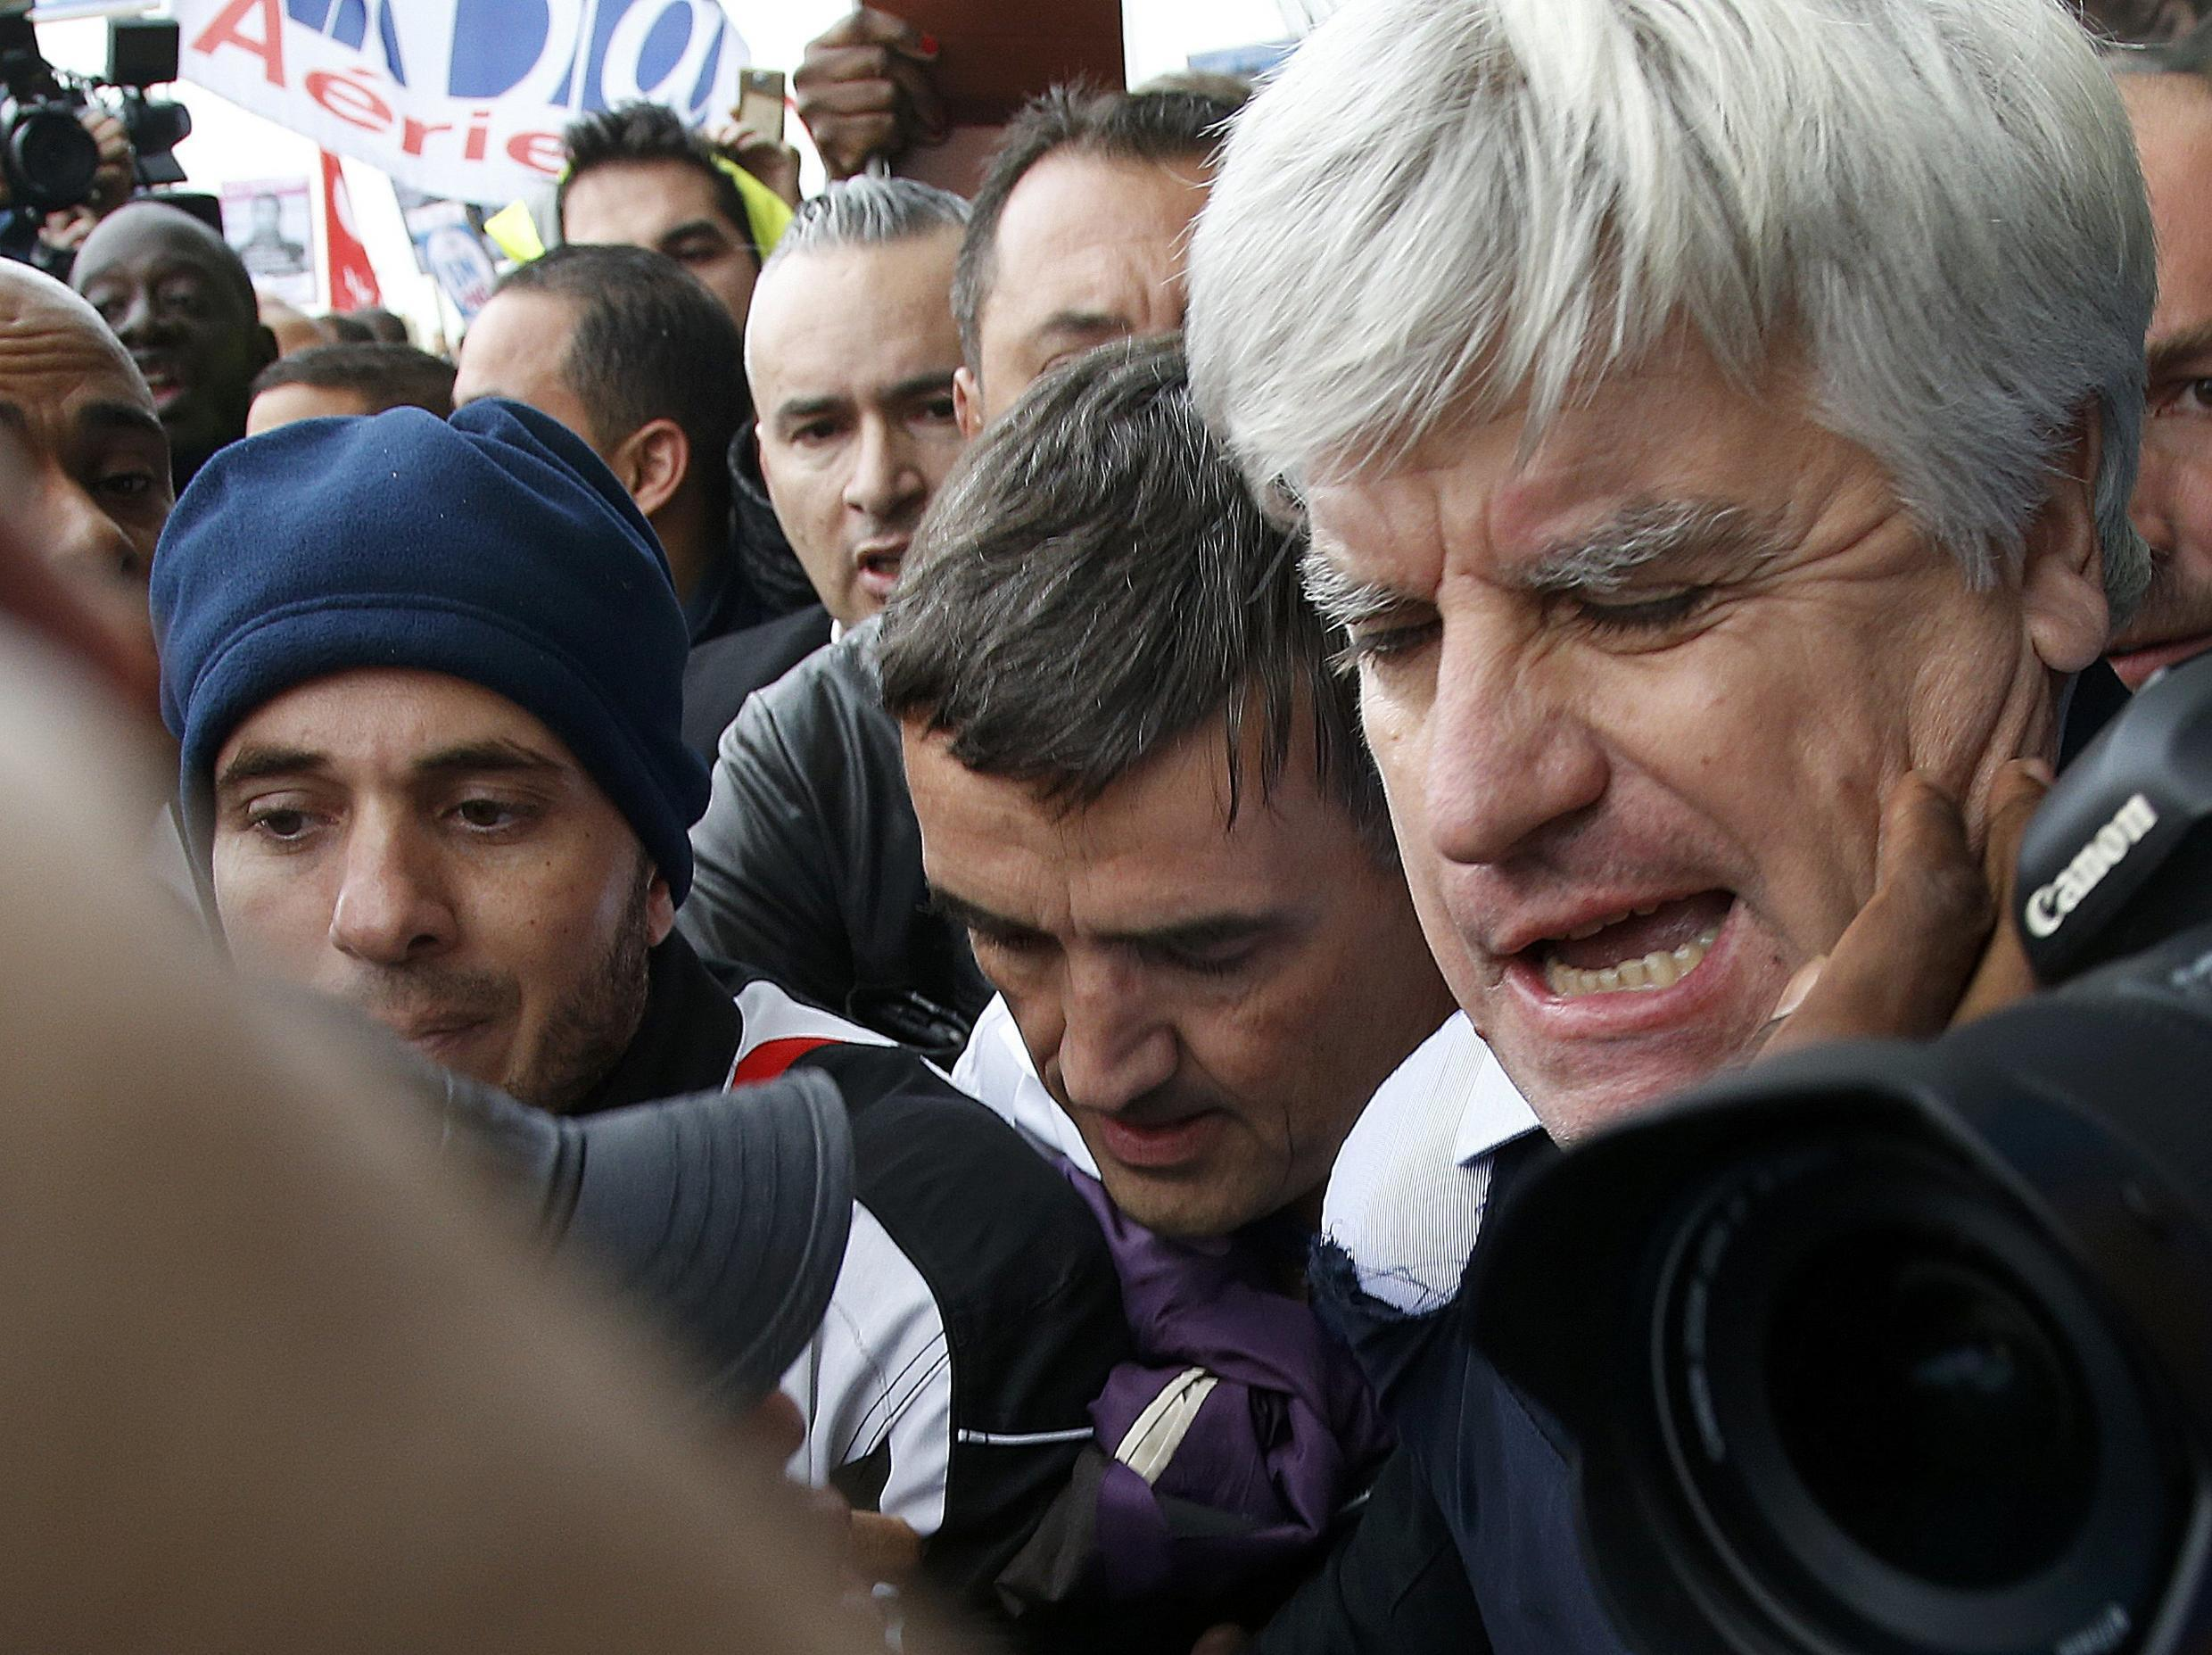 Air France mamangers Xavier Broseta (C) and Pierre Plissonnier (R) surrounded by employees after breakiung off talks with unions